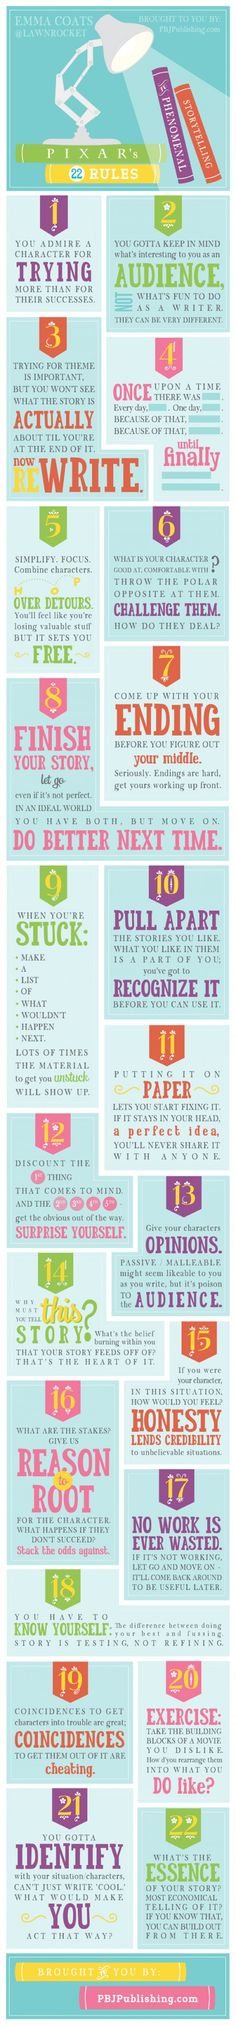 Pixar's 22 Rules to Phenomenal Storytelling [INFOGRAPHIC] | PB Publishing - Holt Think: Ed, Creativity, Tech, Administration